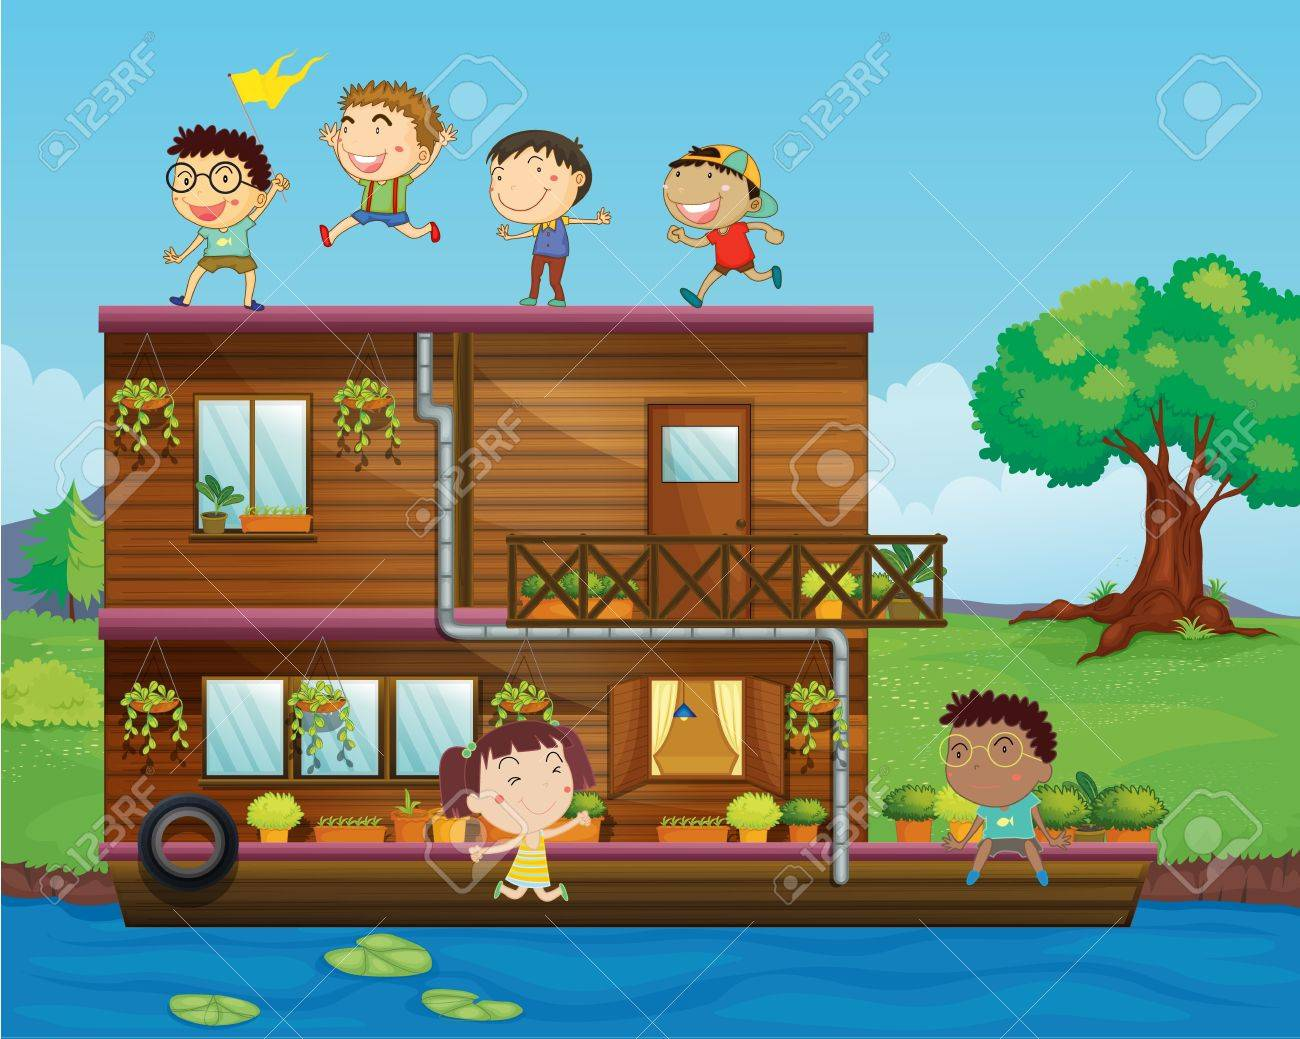 Houseboat Images Houseboat Images Stock Pictures Royalty Free Houseboat Photos